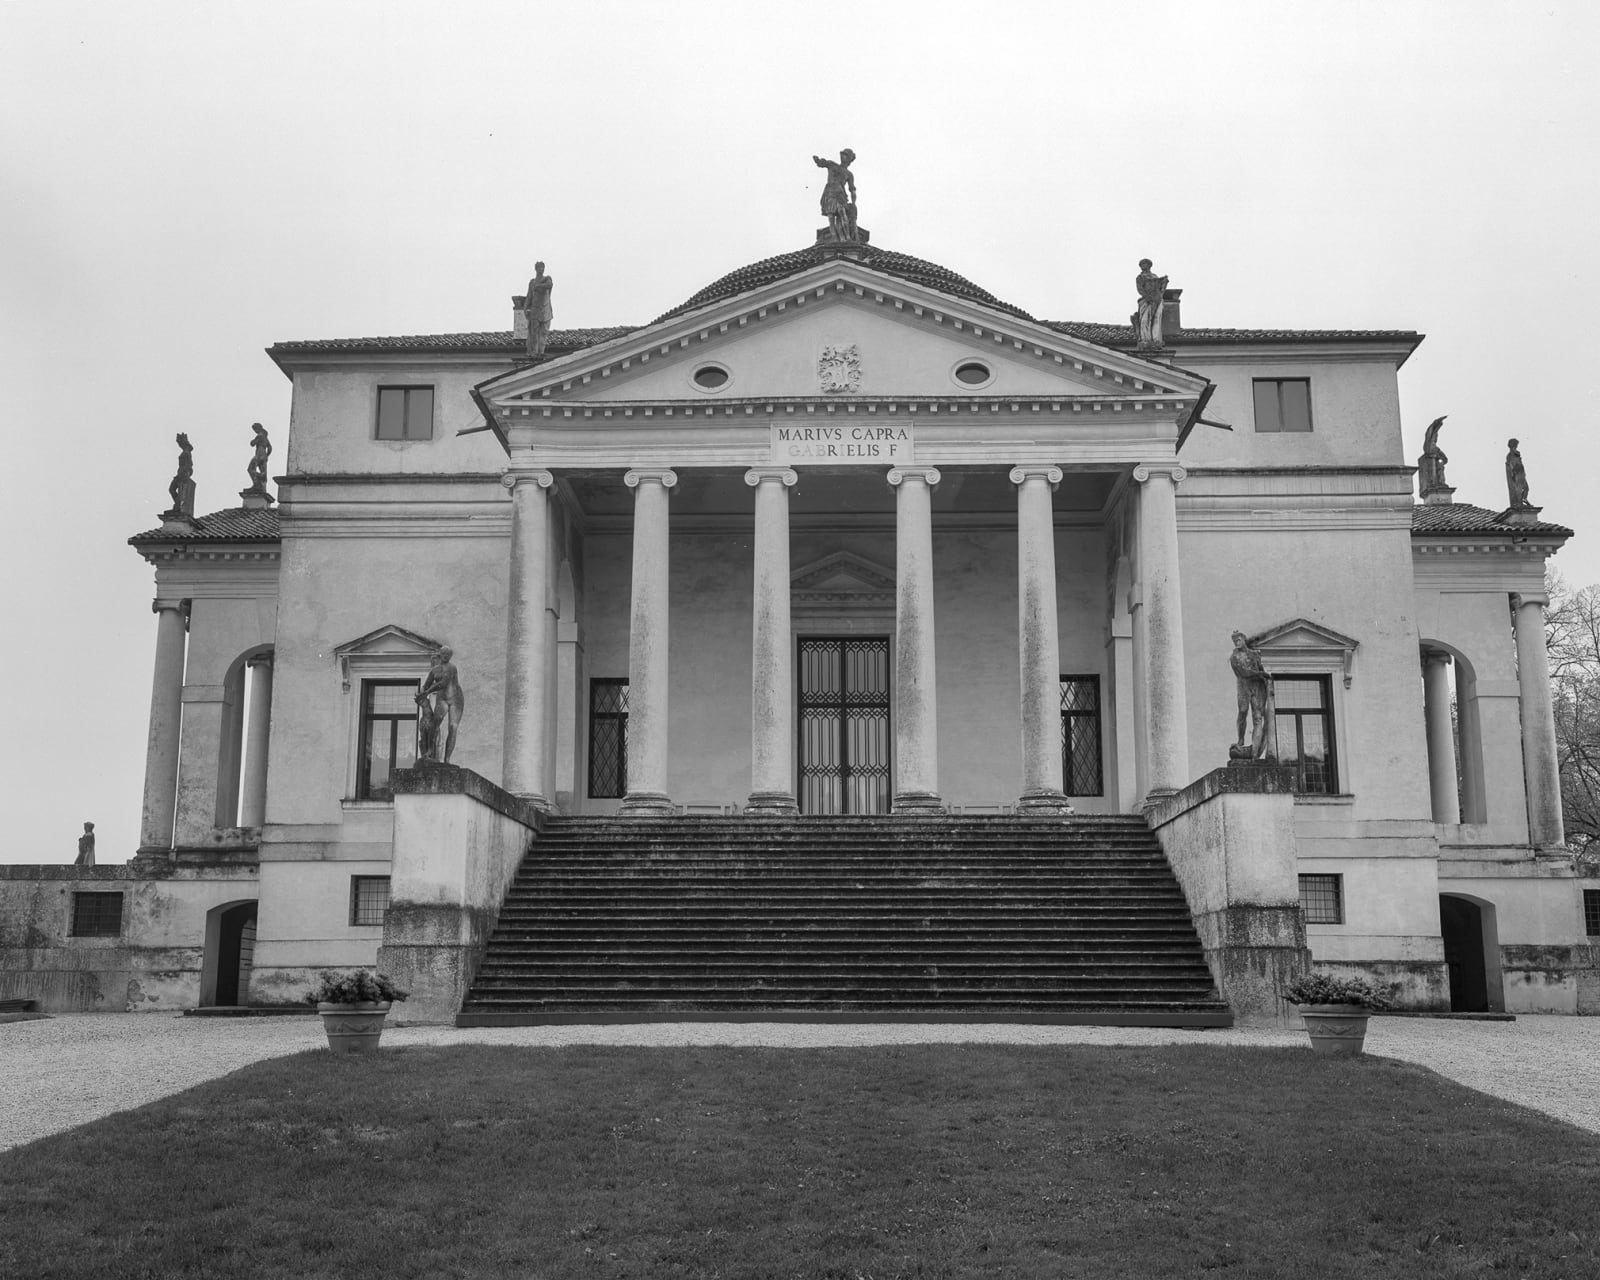 Dag Alveng, Palladio Songs